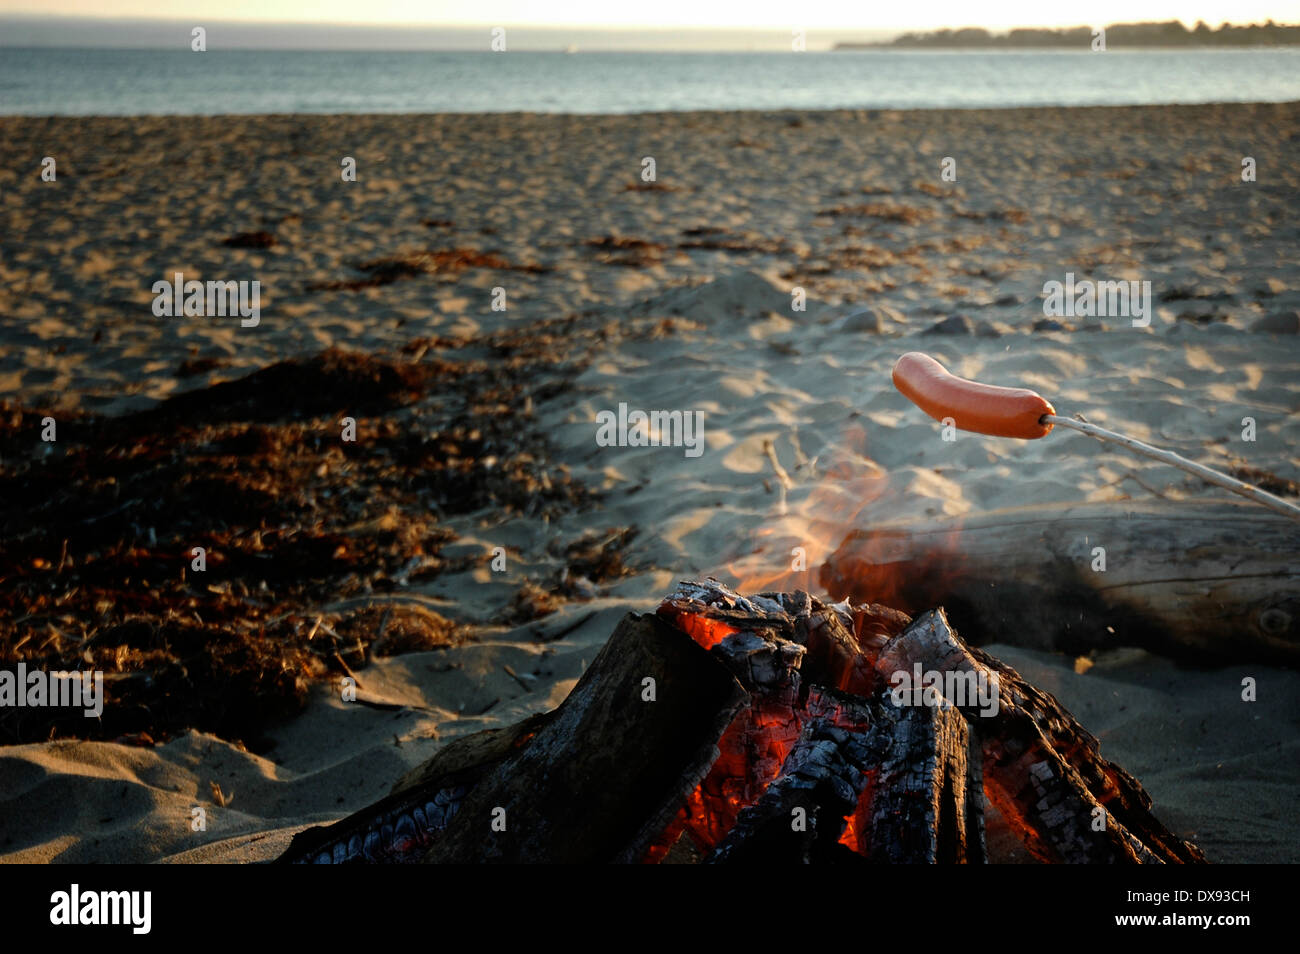 Hot dog roasting over campfire on the beachStock Photo